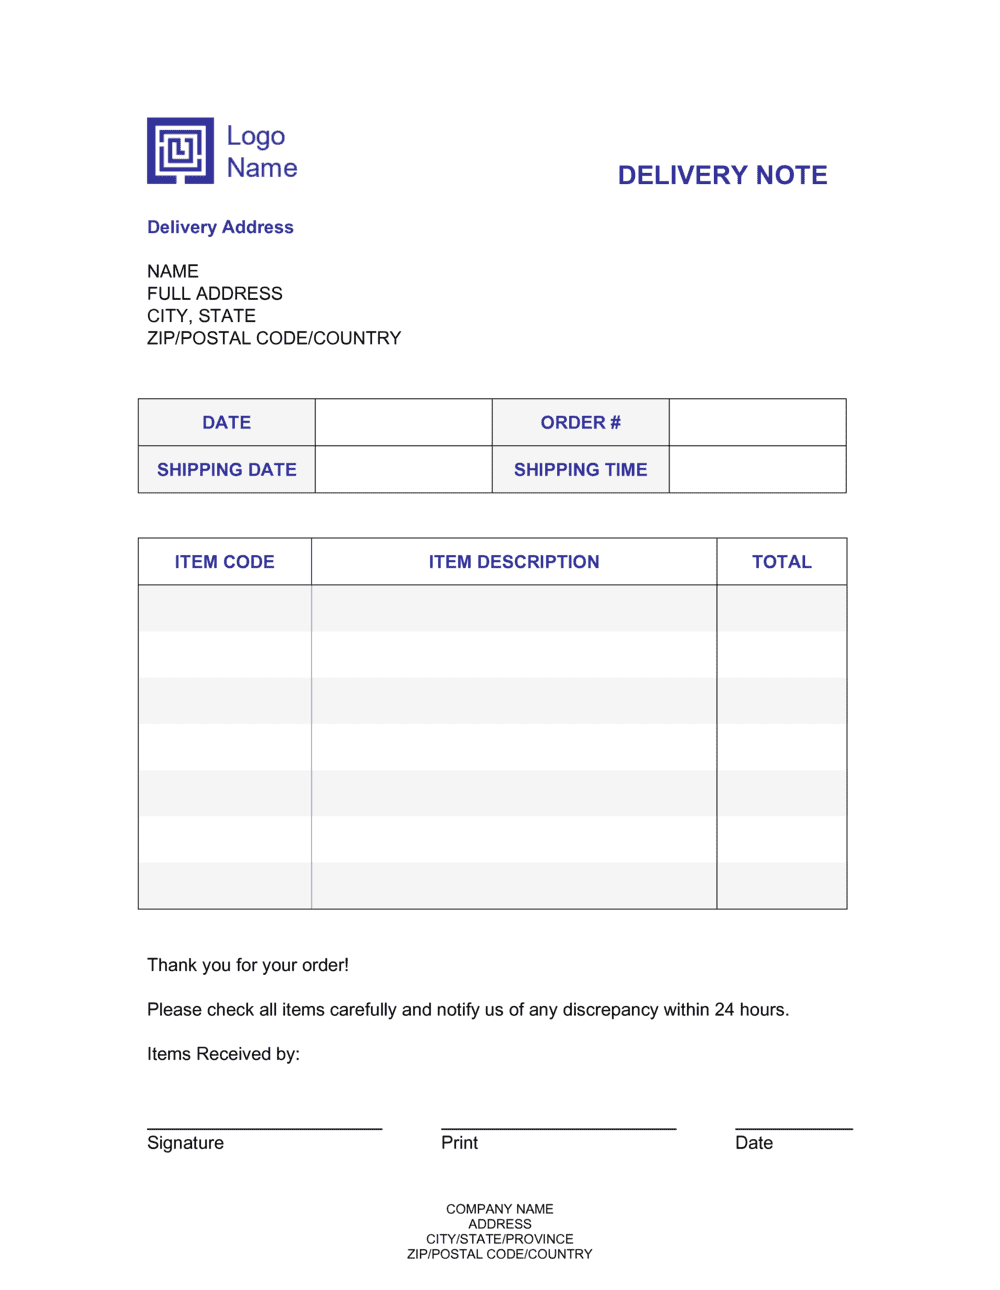 Business-in-a-Box's Delivery Note Template